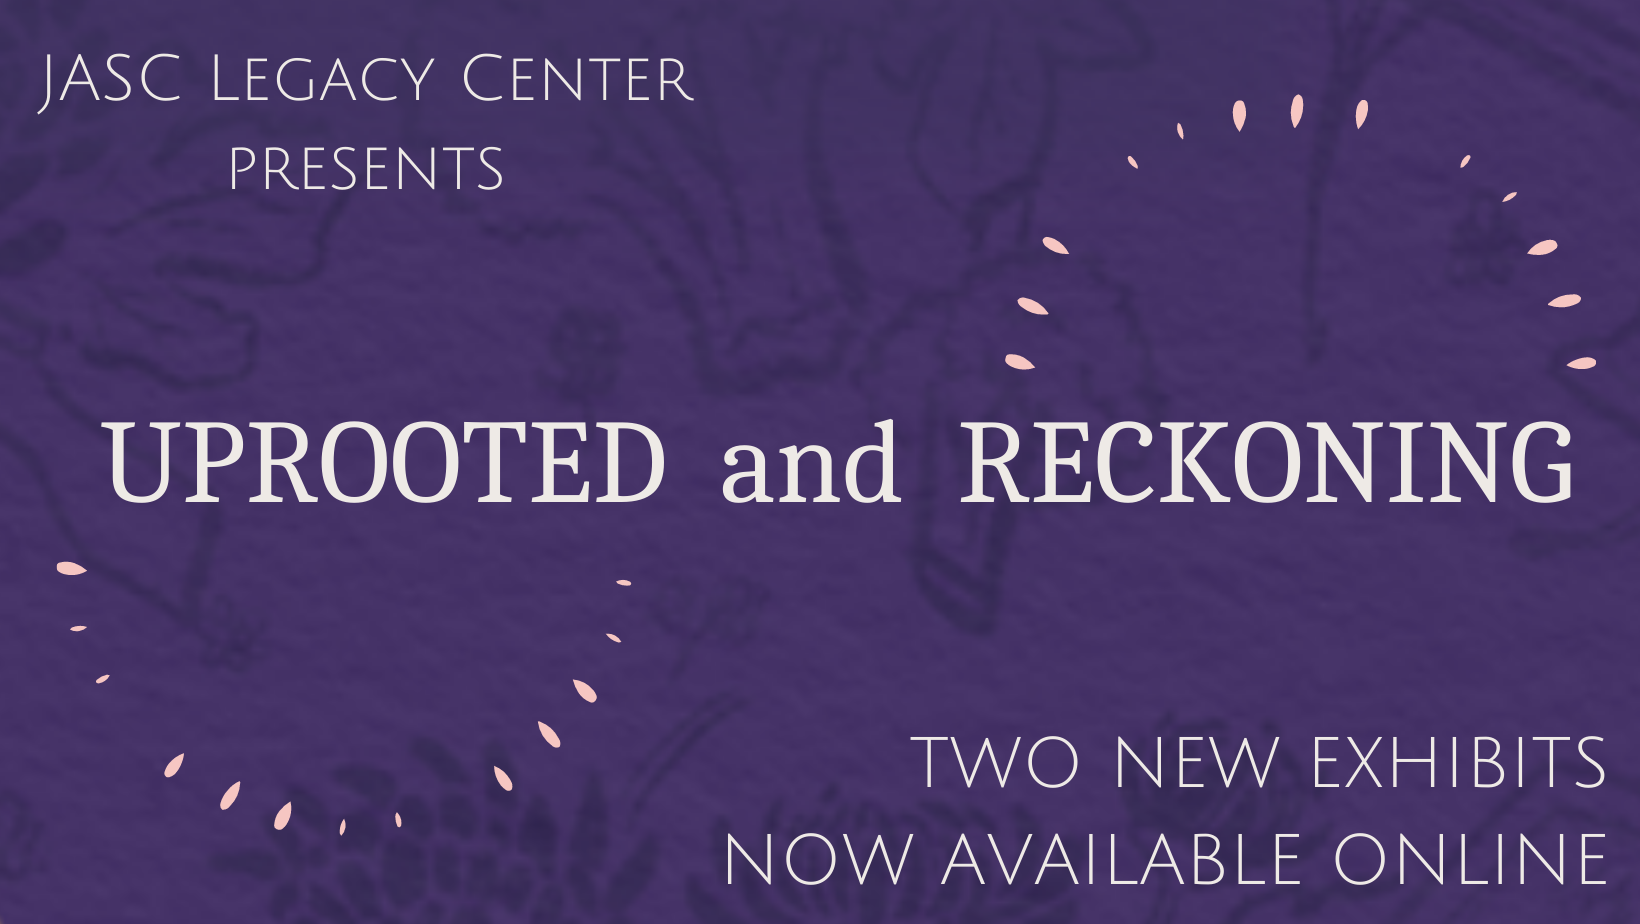 """Dark purple background with gray text. Text reads """"JASC Legacy Center Presents"""" in upper left, """"Uprooted and Reckoning"""" at center, and """"Two new exhibits available online"""" at bottom right."""